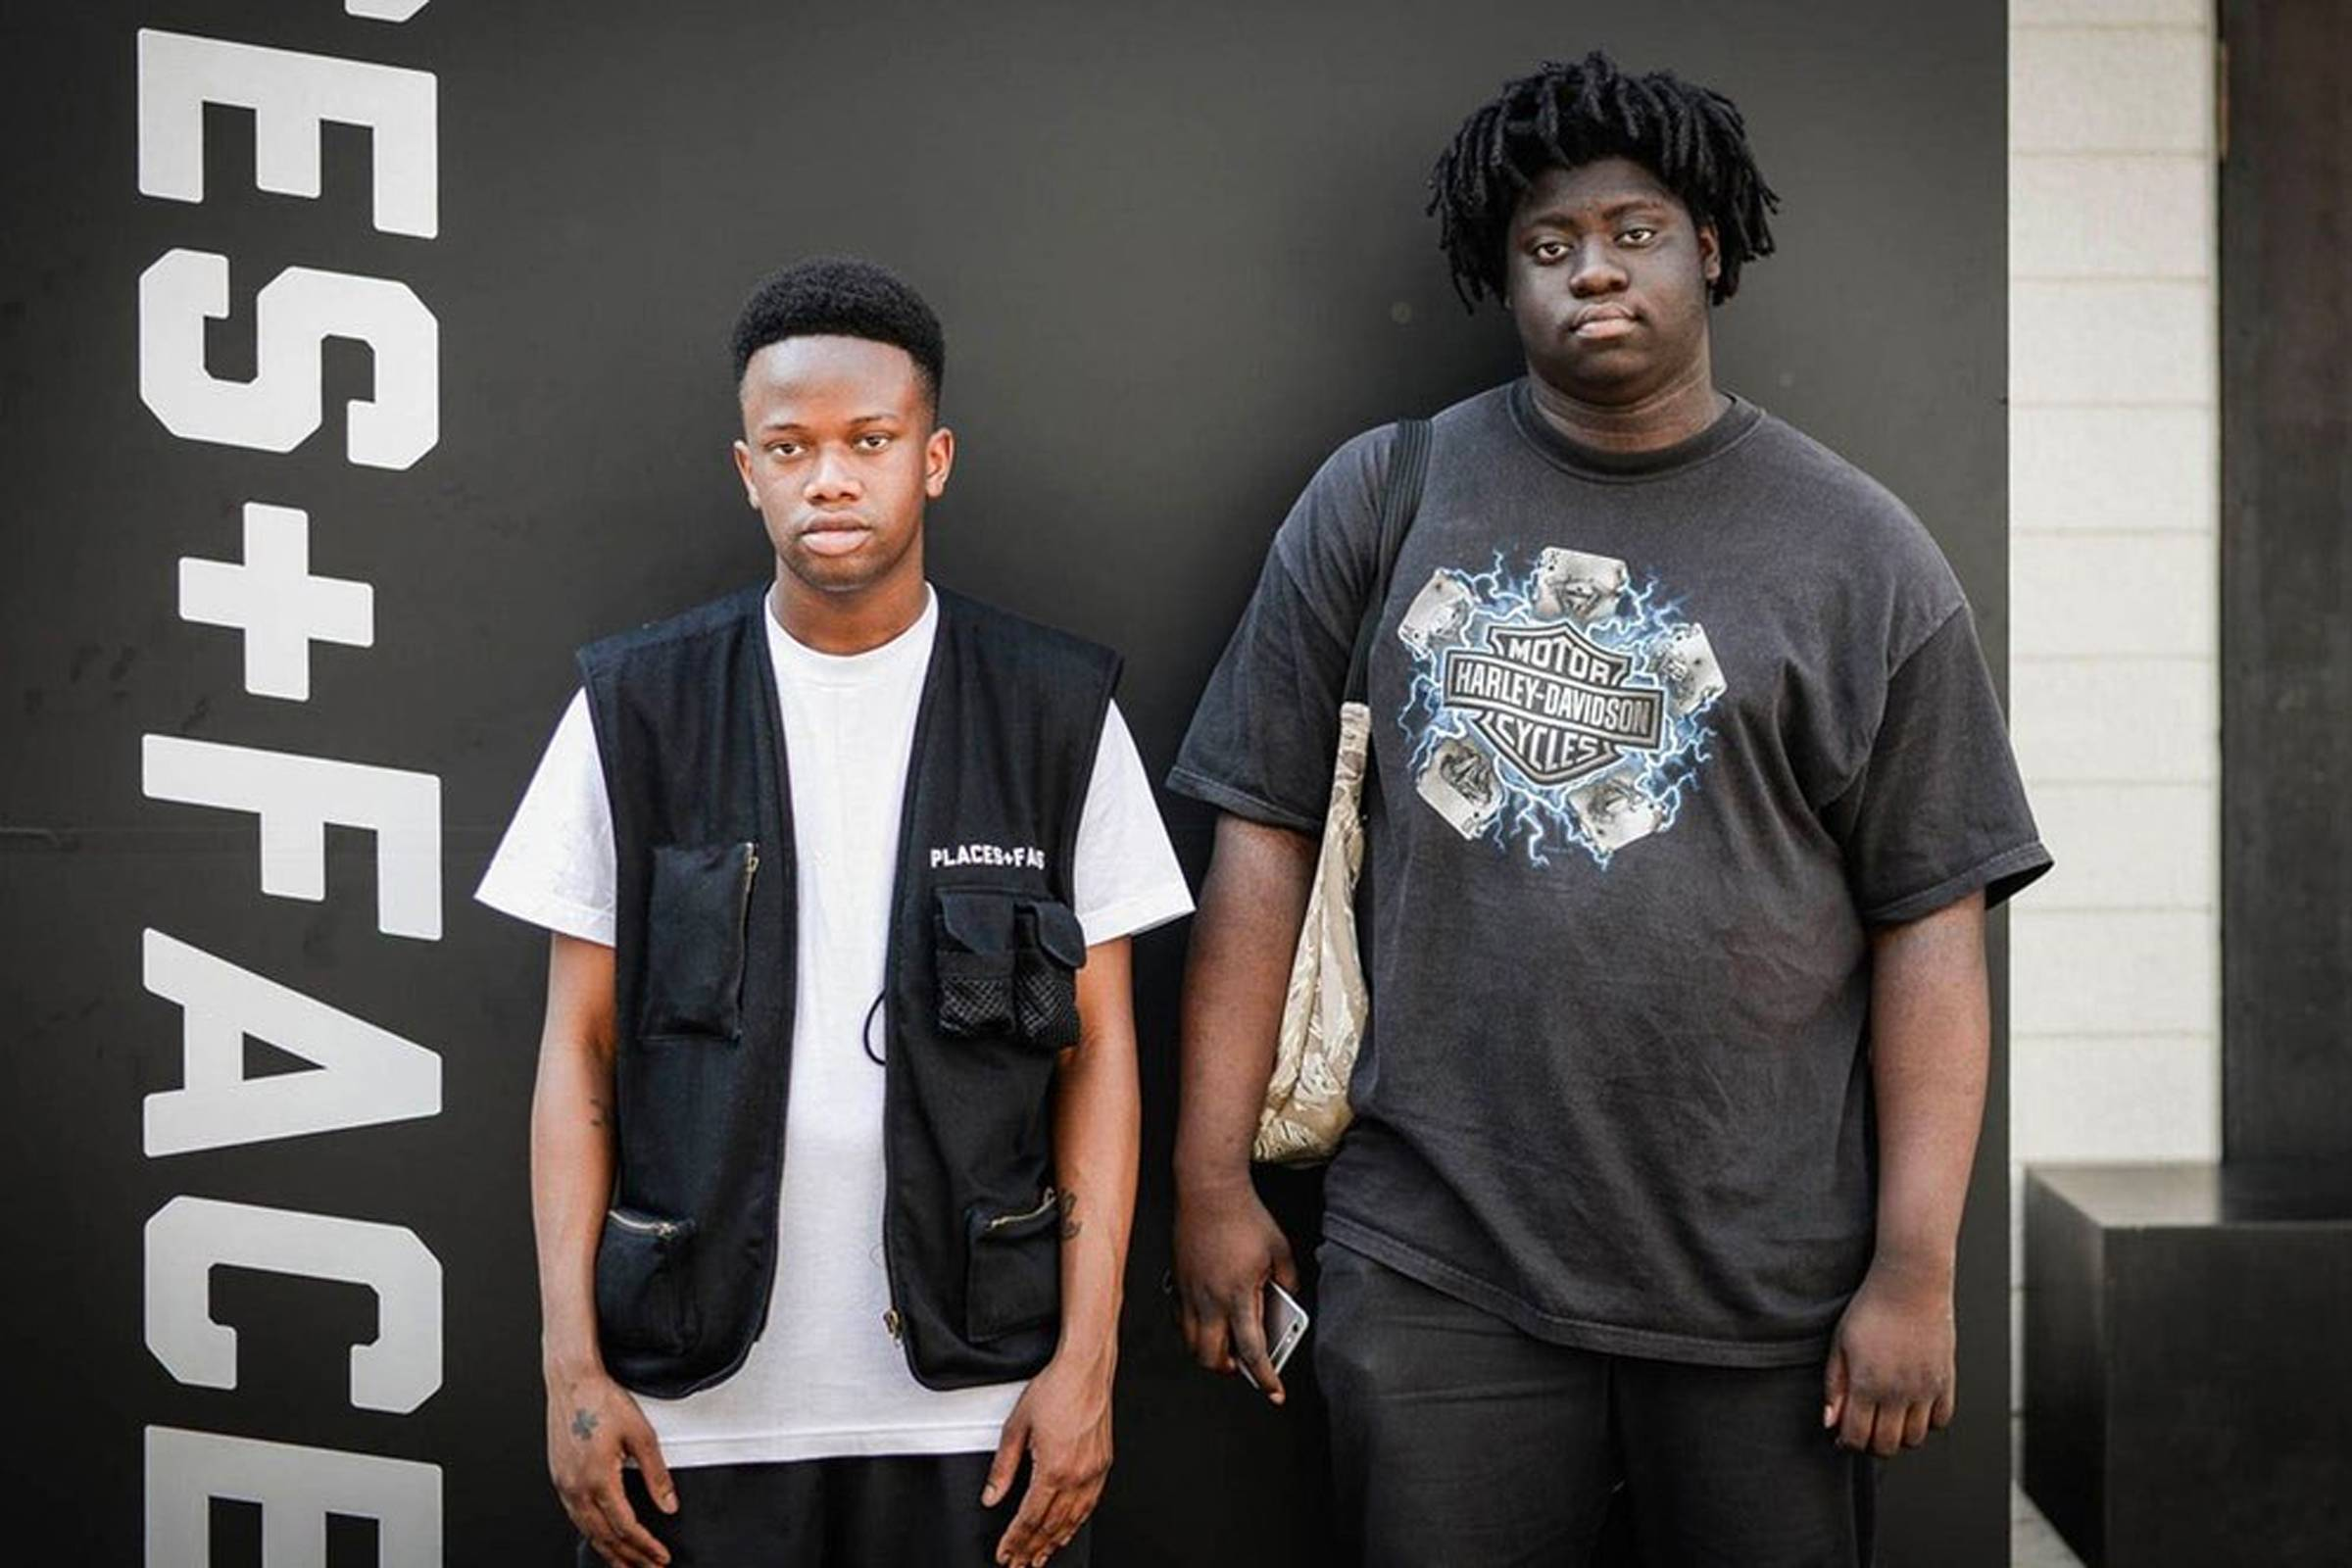 Ceisay (right) and Soulz (left), Founders of Places + Faces